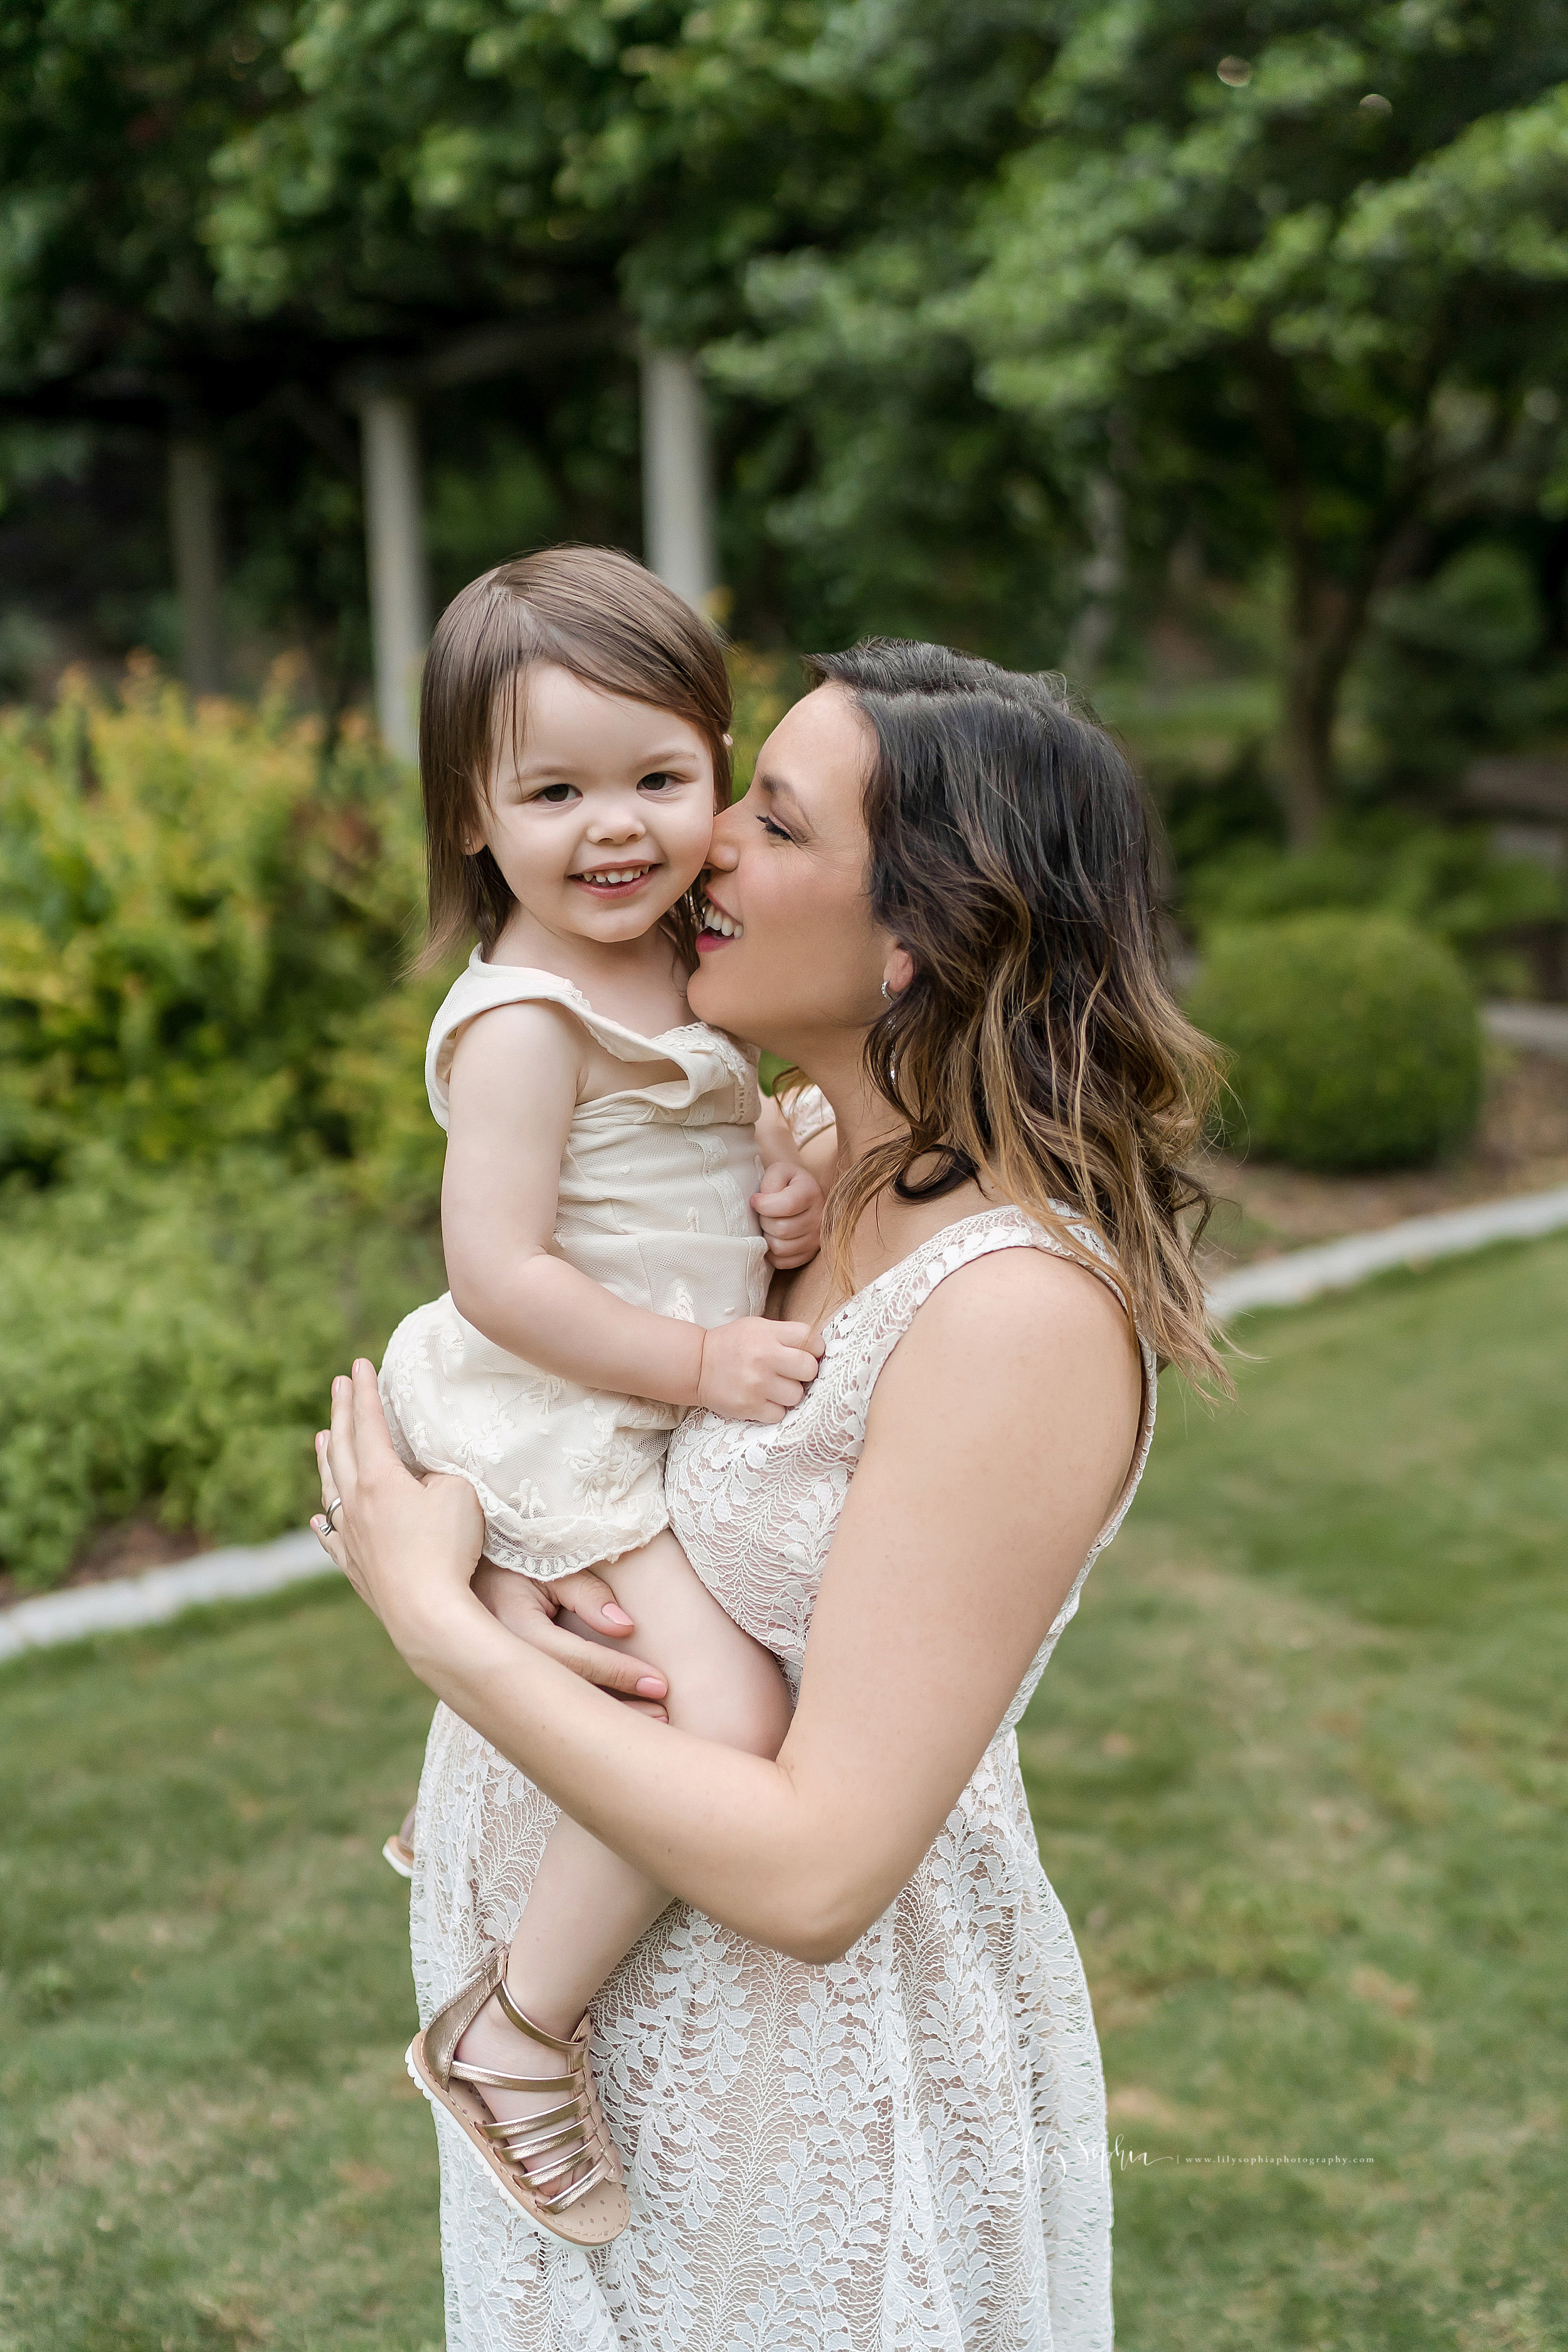 Maternity photo of a happy mother holding her toddler daughter in an Atlanta garden.